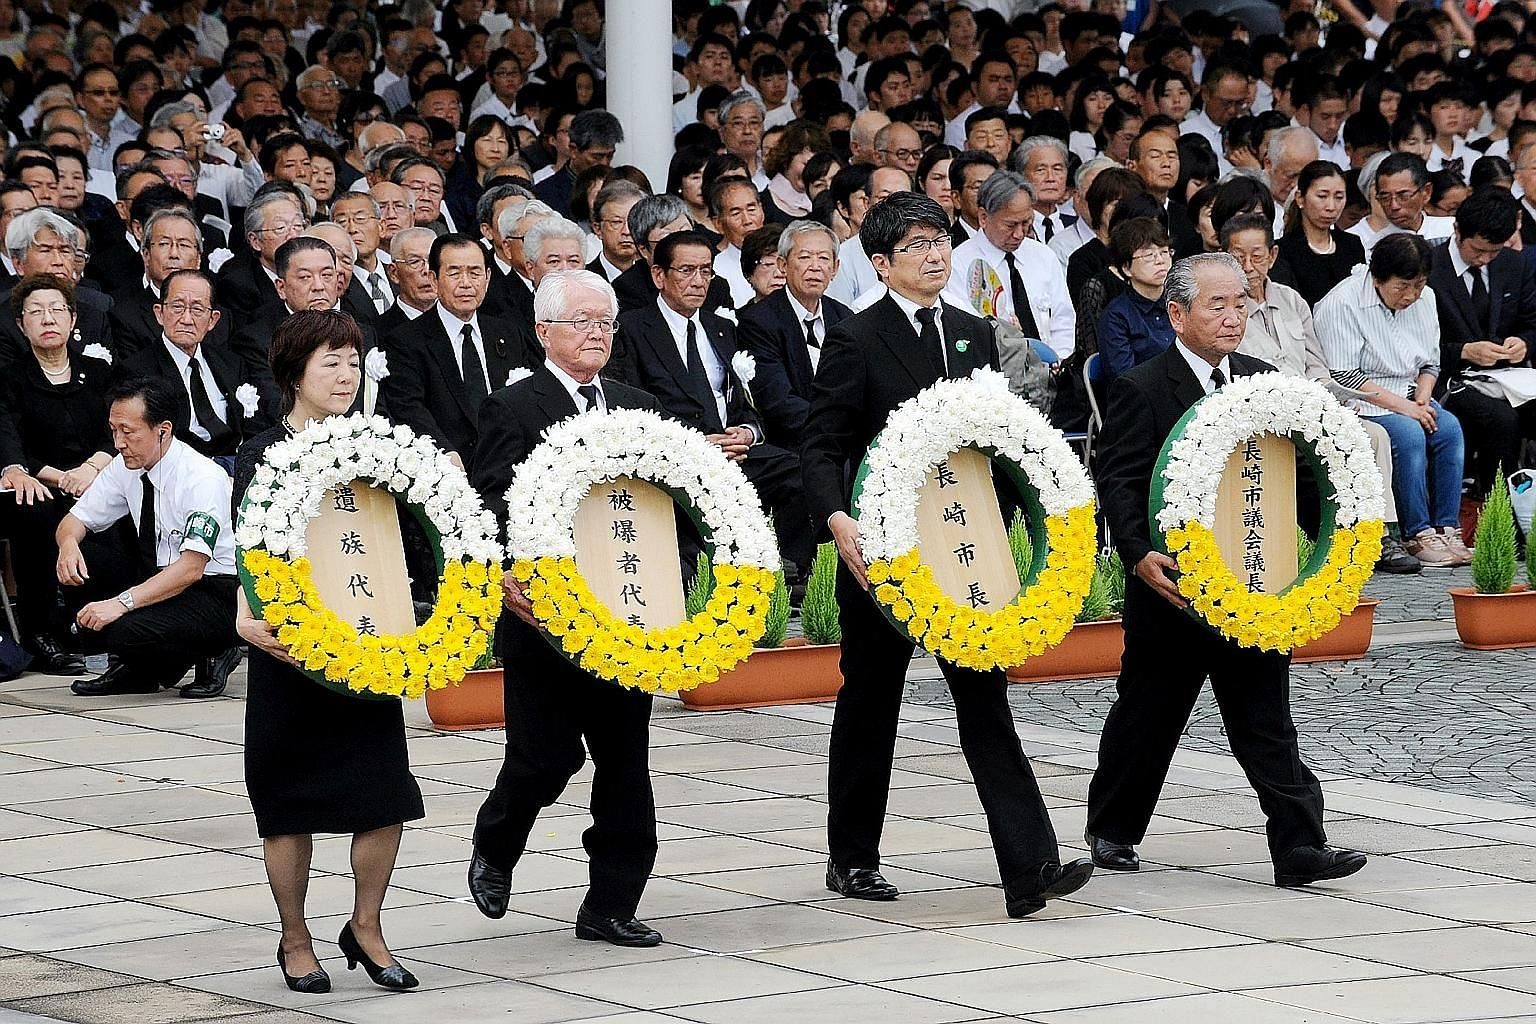 Nagasaki Mayor Tomihisa Taue (second from right) with representatives of bombing victims at a ceremony yesterday to mark the 1945 nuclear bombing of the city.